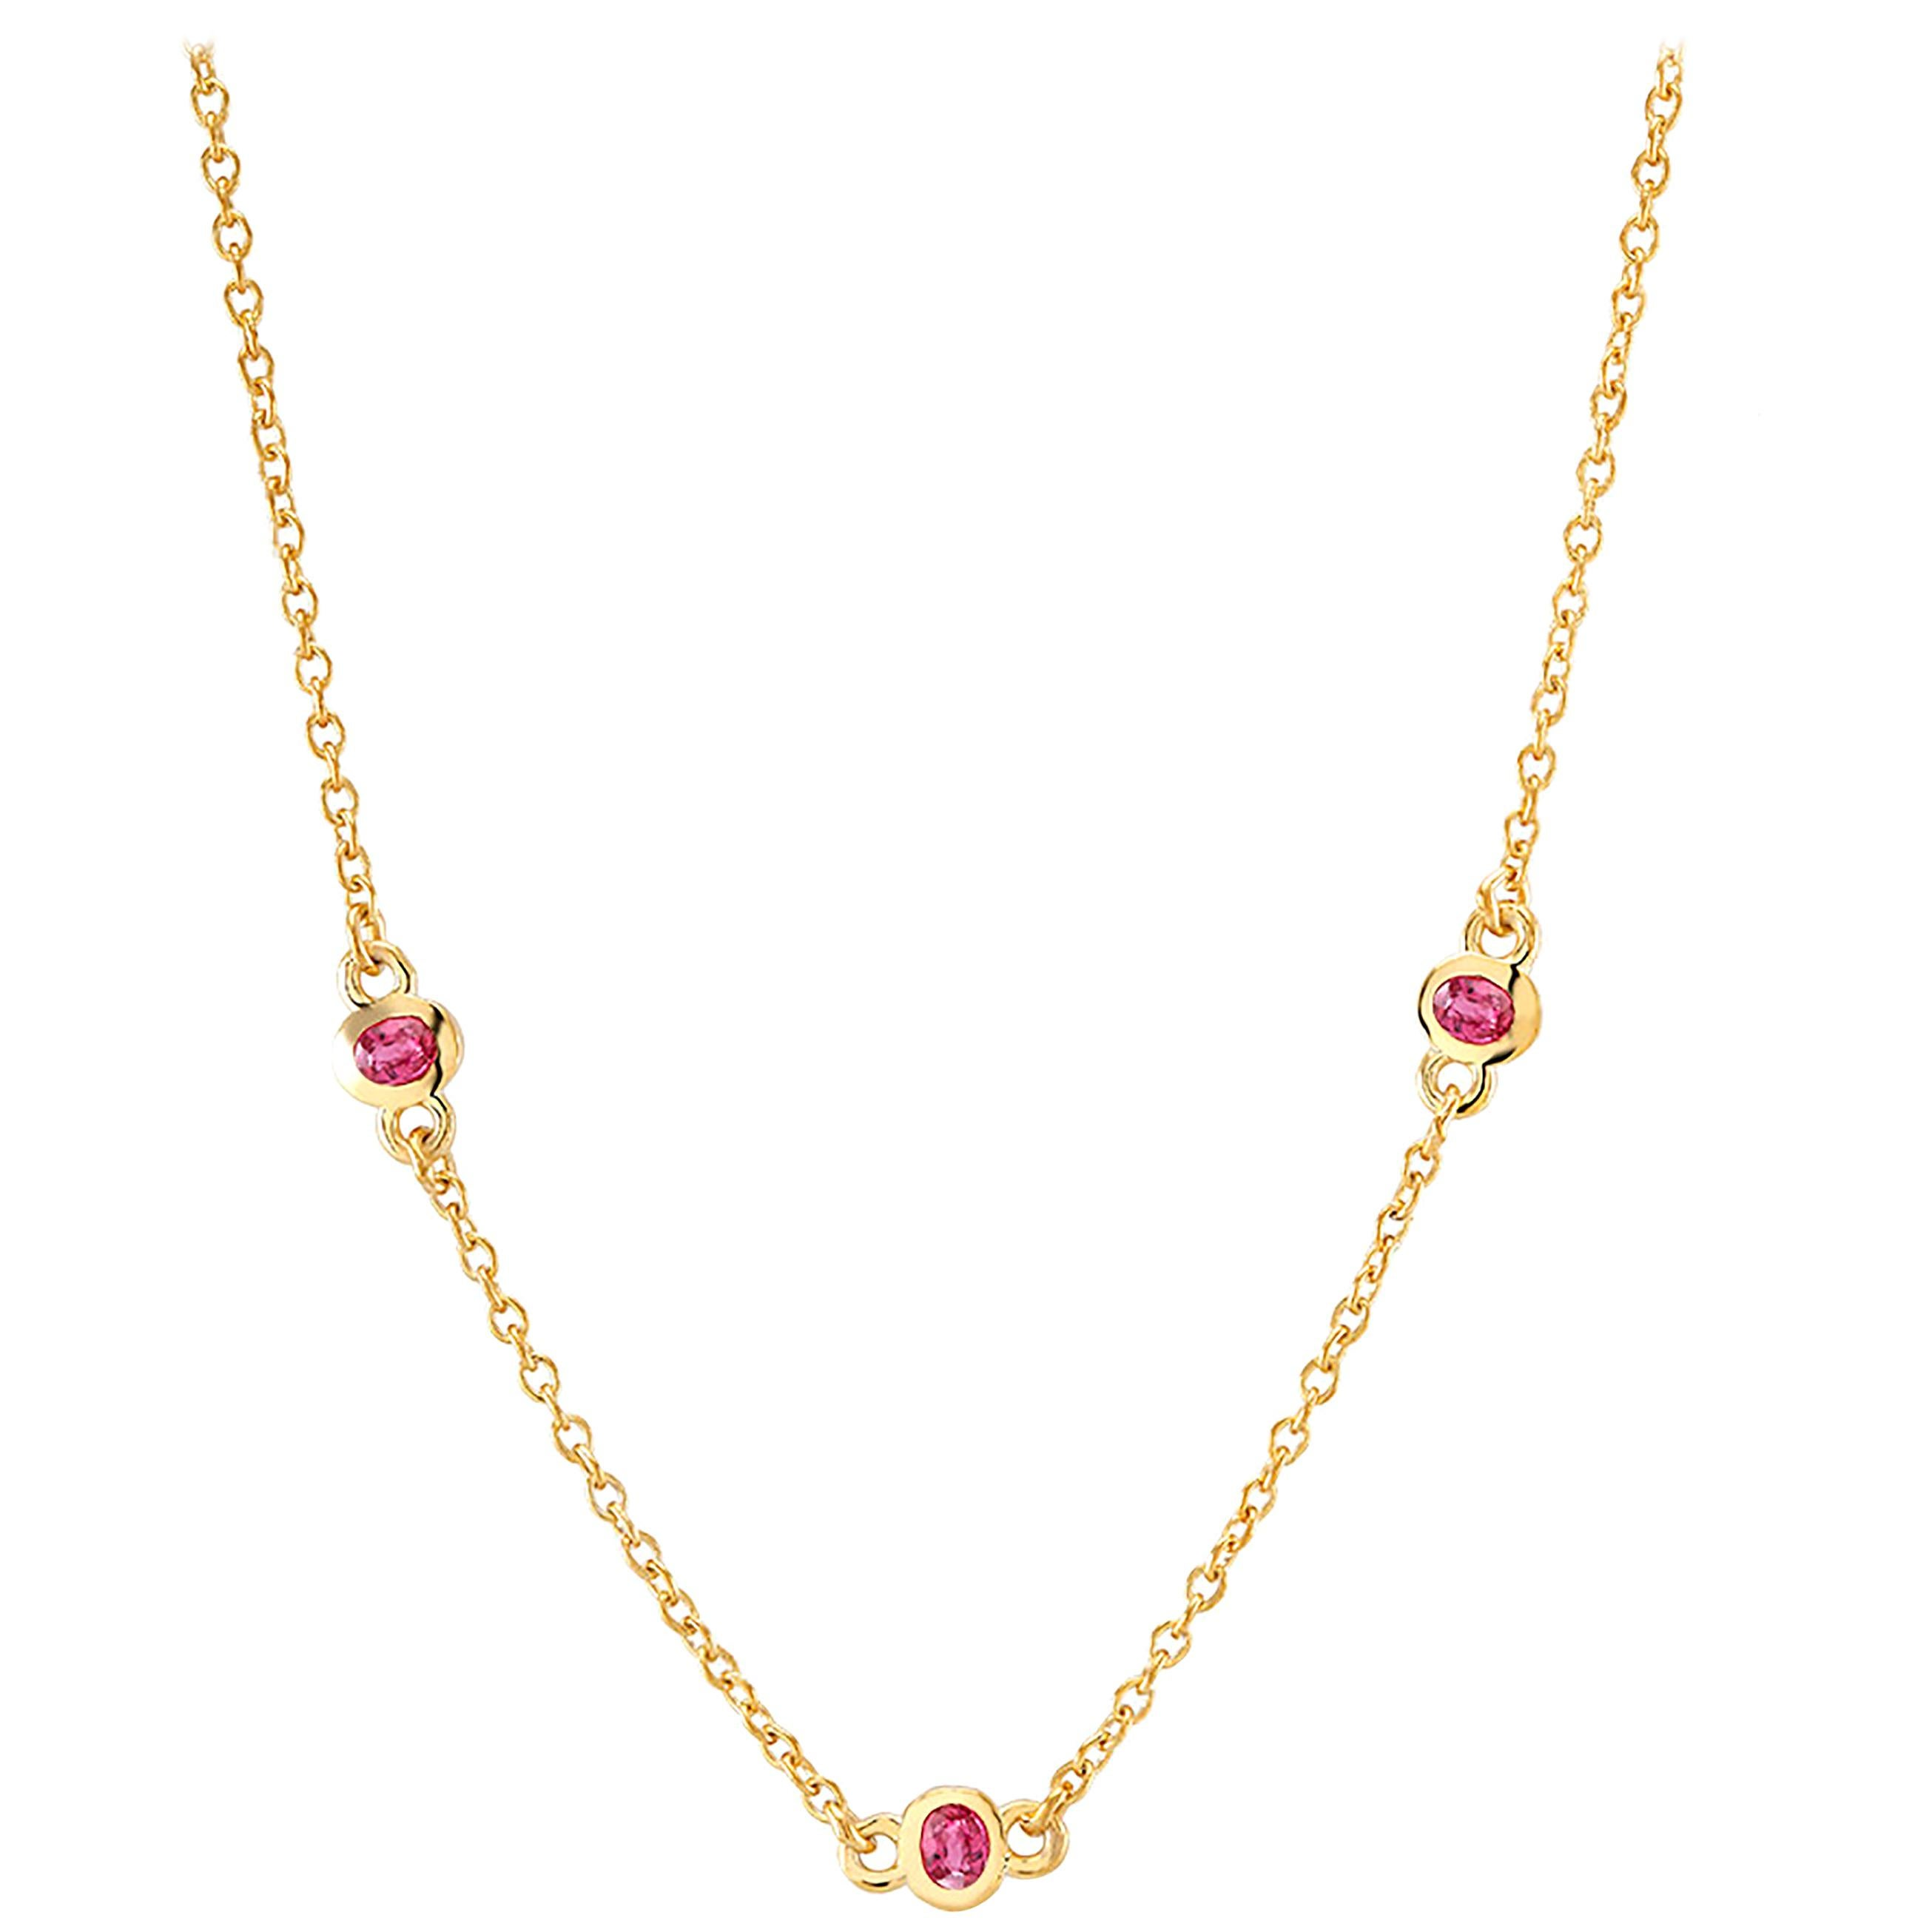 Three Rubies Bezel Set Silver Pendant Necklace Yellow Gold-Plated